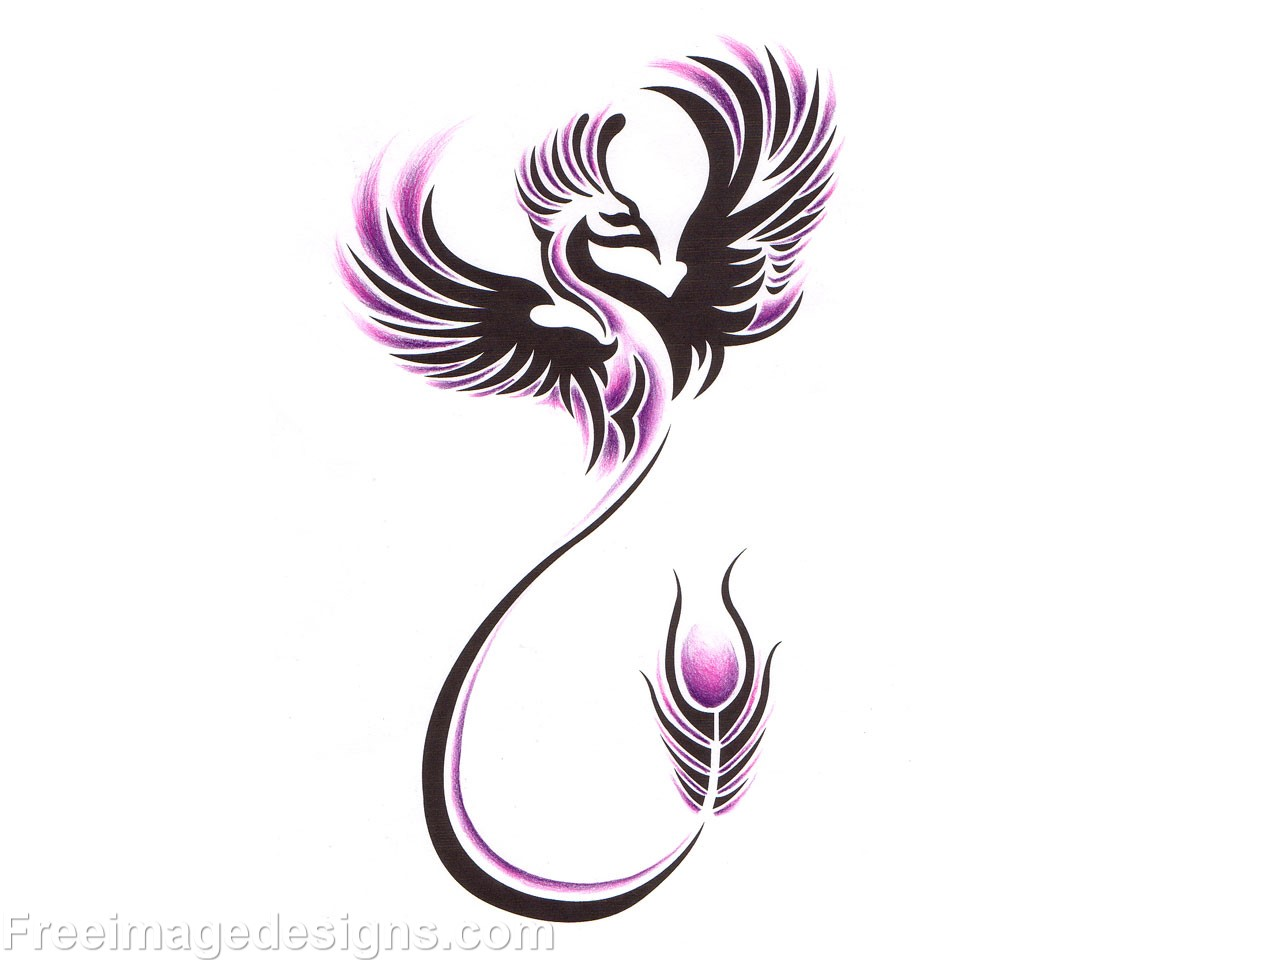 phoenix bird image design download free image tattoo designs freeimagedesigns com. Black Bedroom Furniture Sets. Home Design Ideas